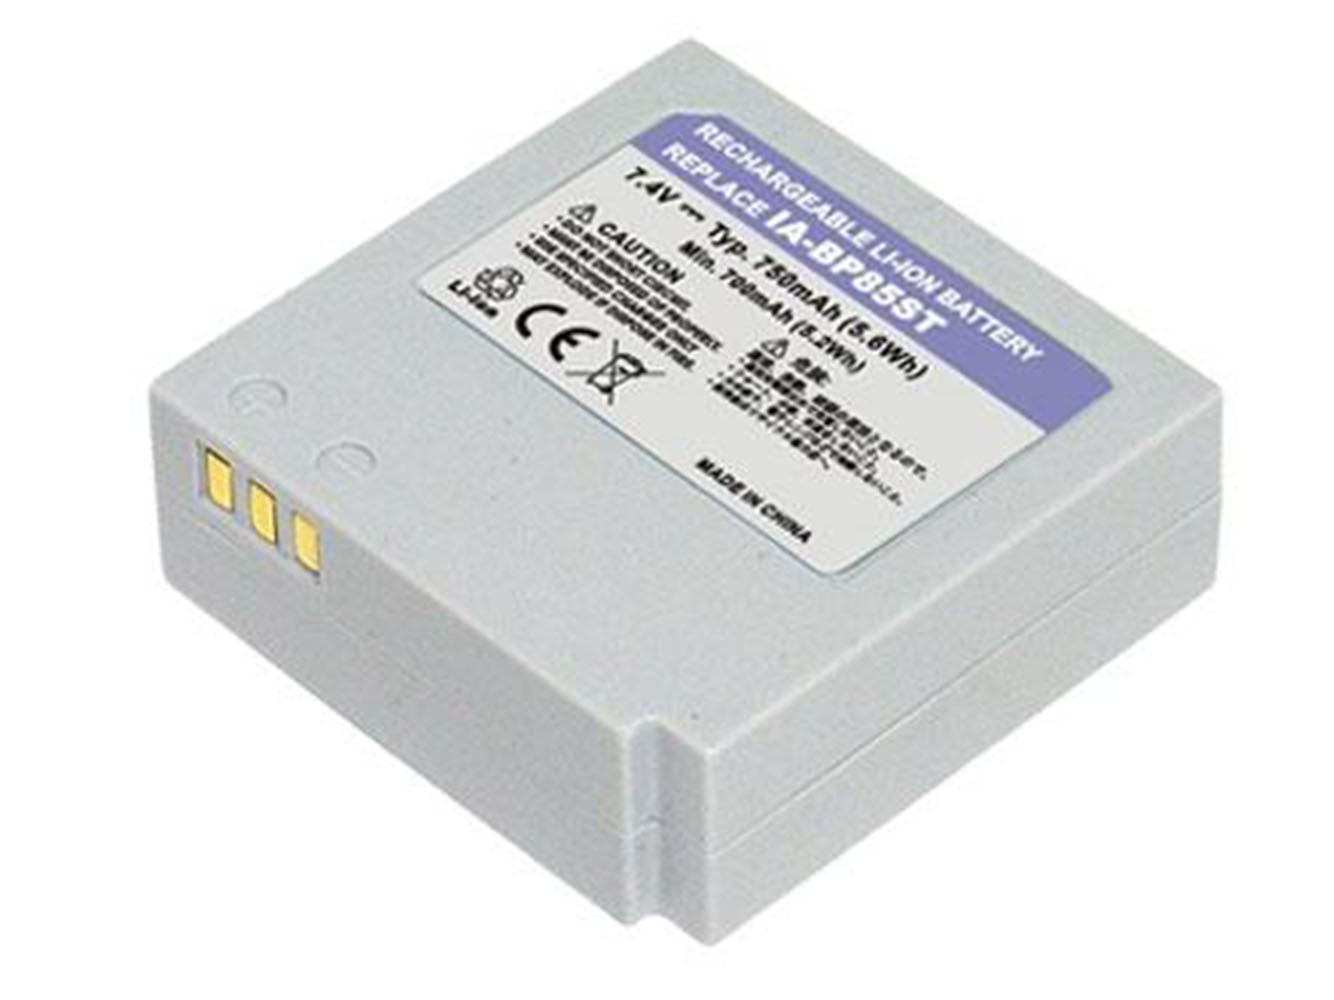 Replacement for SAMSUNG HMX-H, SC-HMX, SC-MX, SMX-F, VP-HMX, VP-MX Series Camcorder Battery